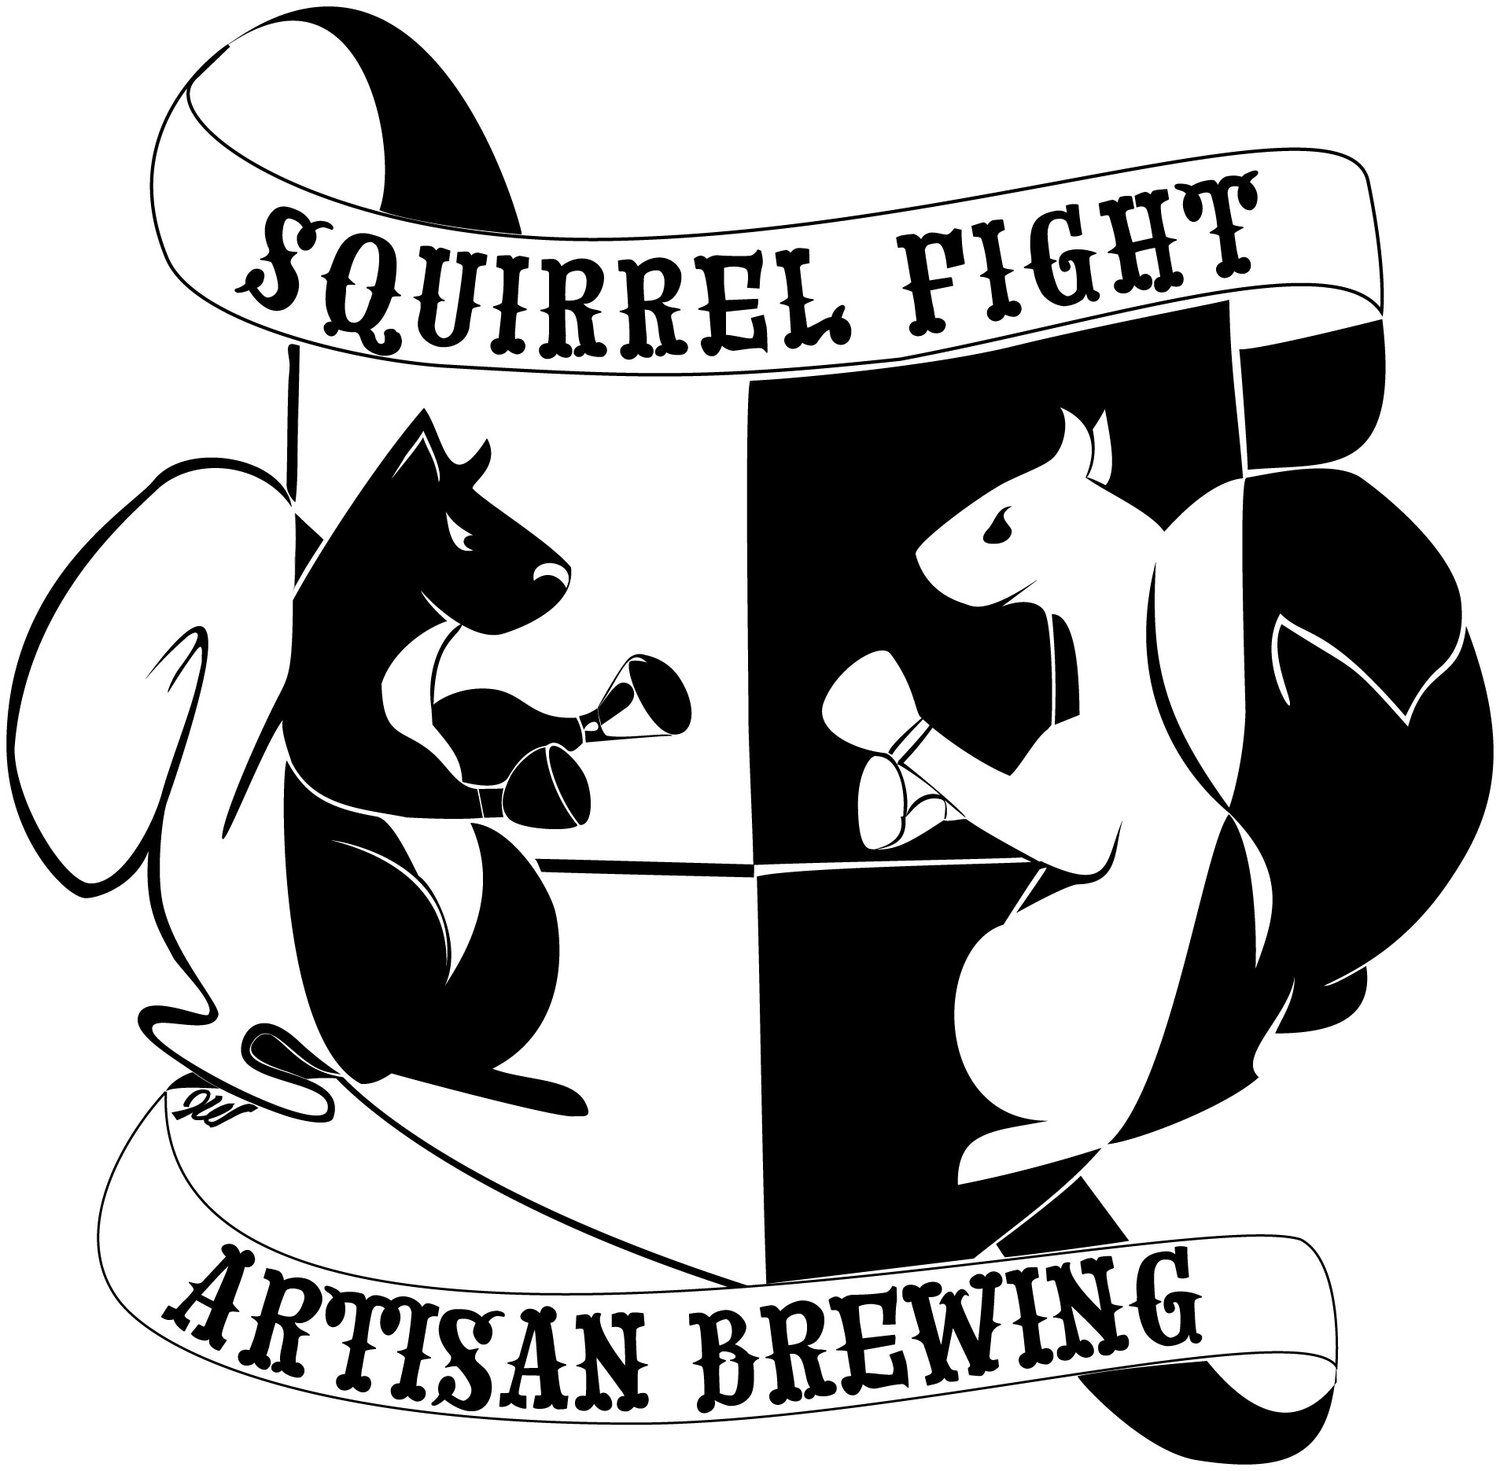 Squirrel Fight Artisan Brewing